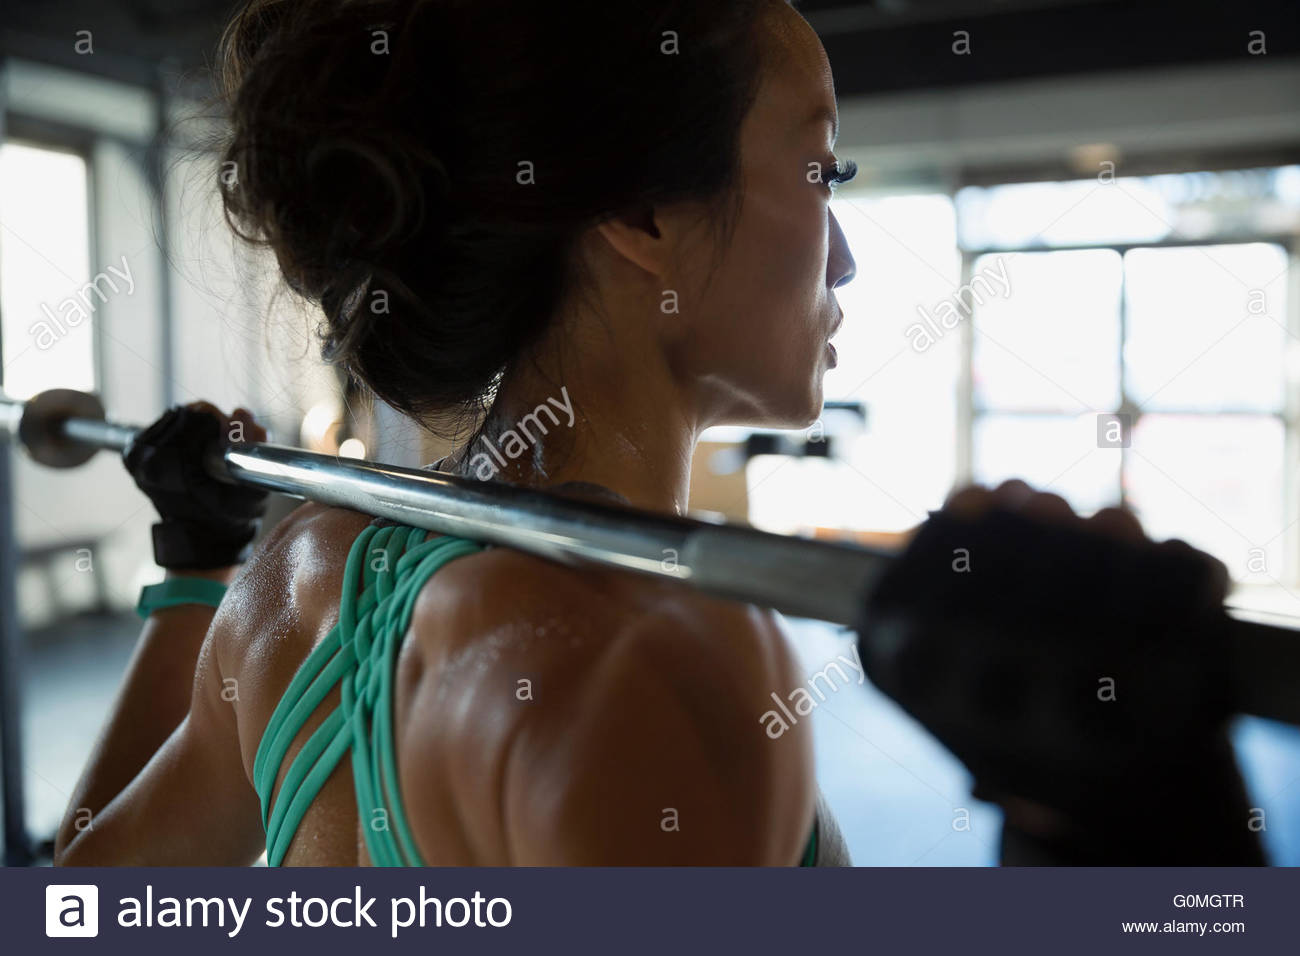 Close up woman weightlifting with barbell at gym - Stock Image